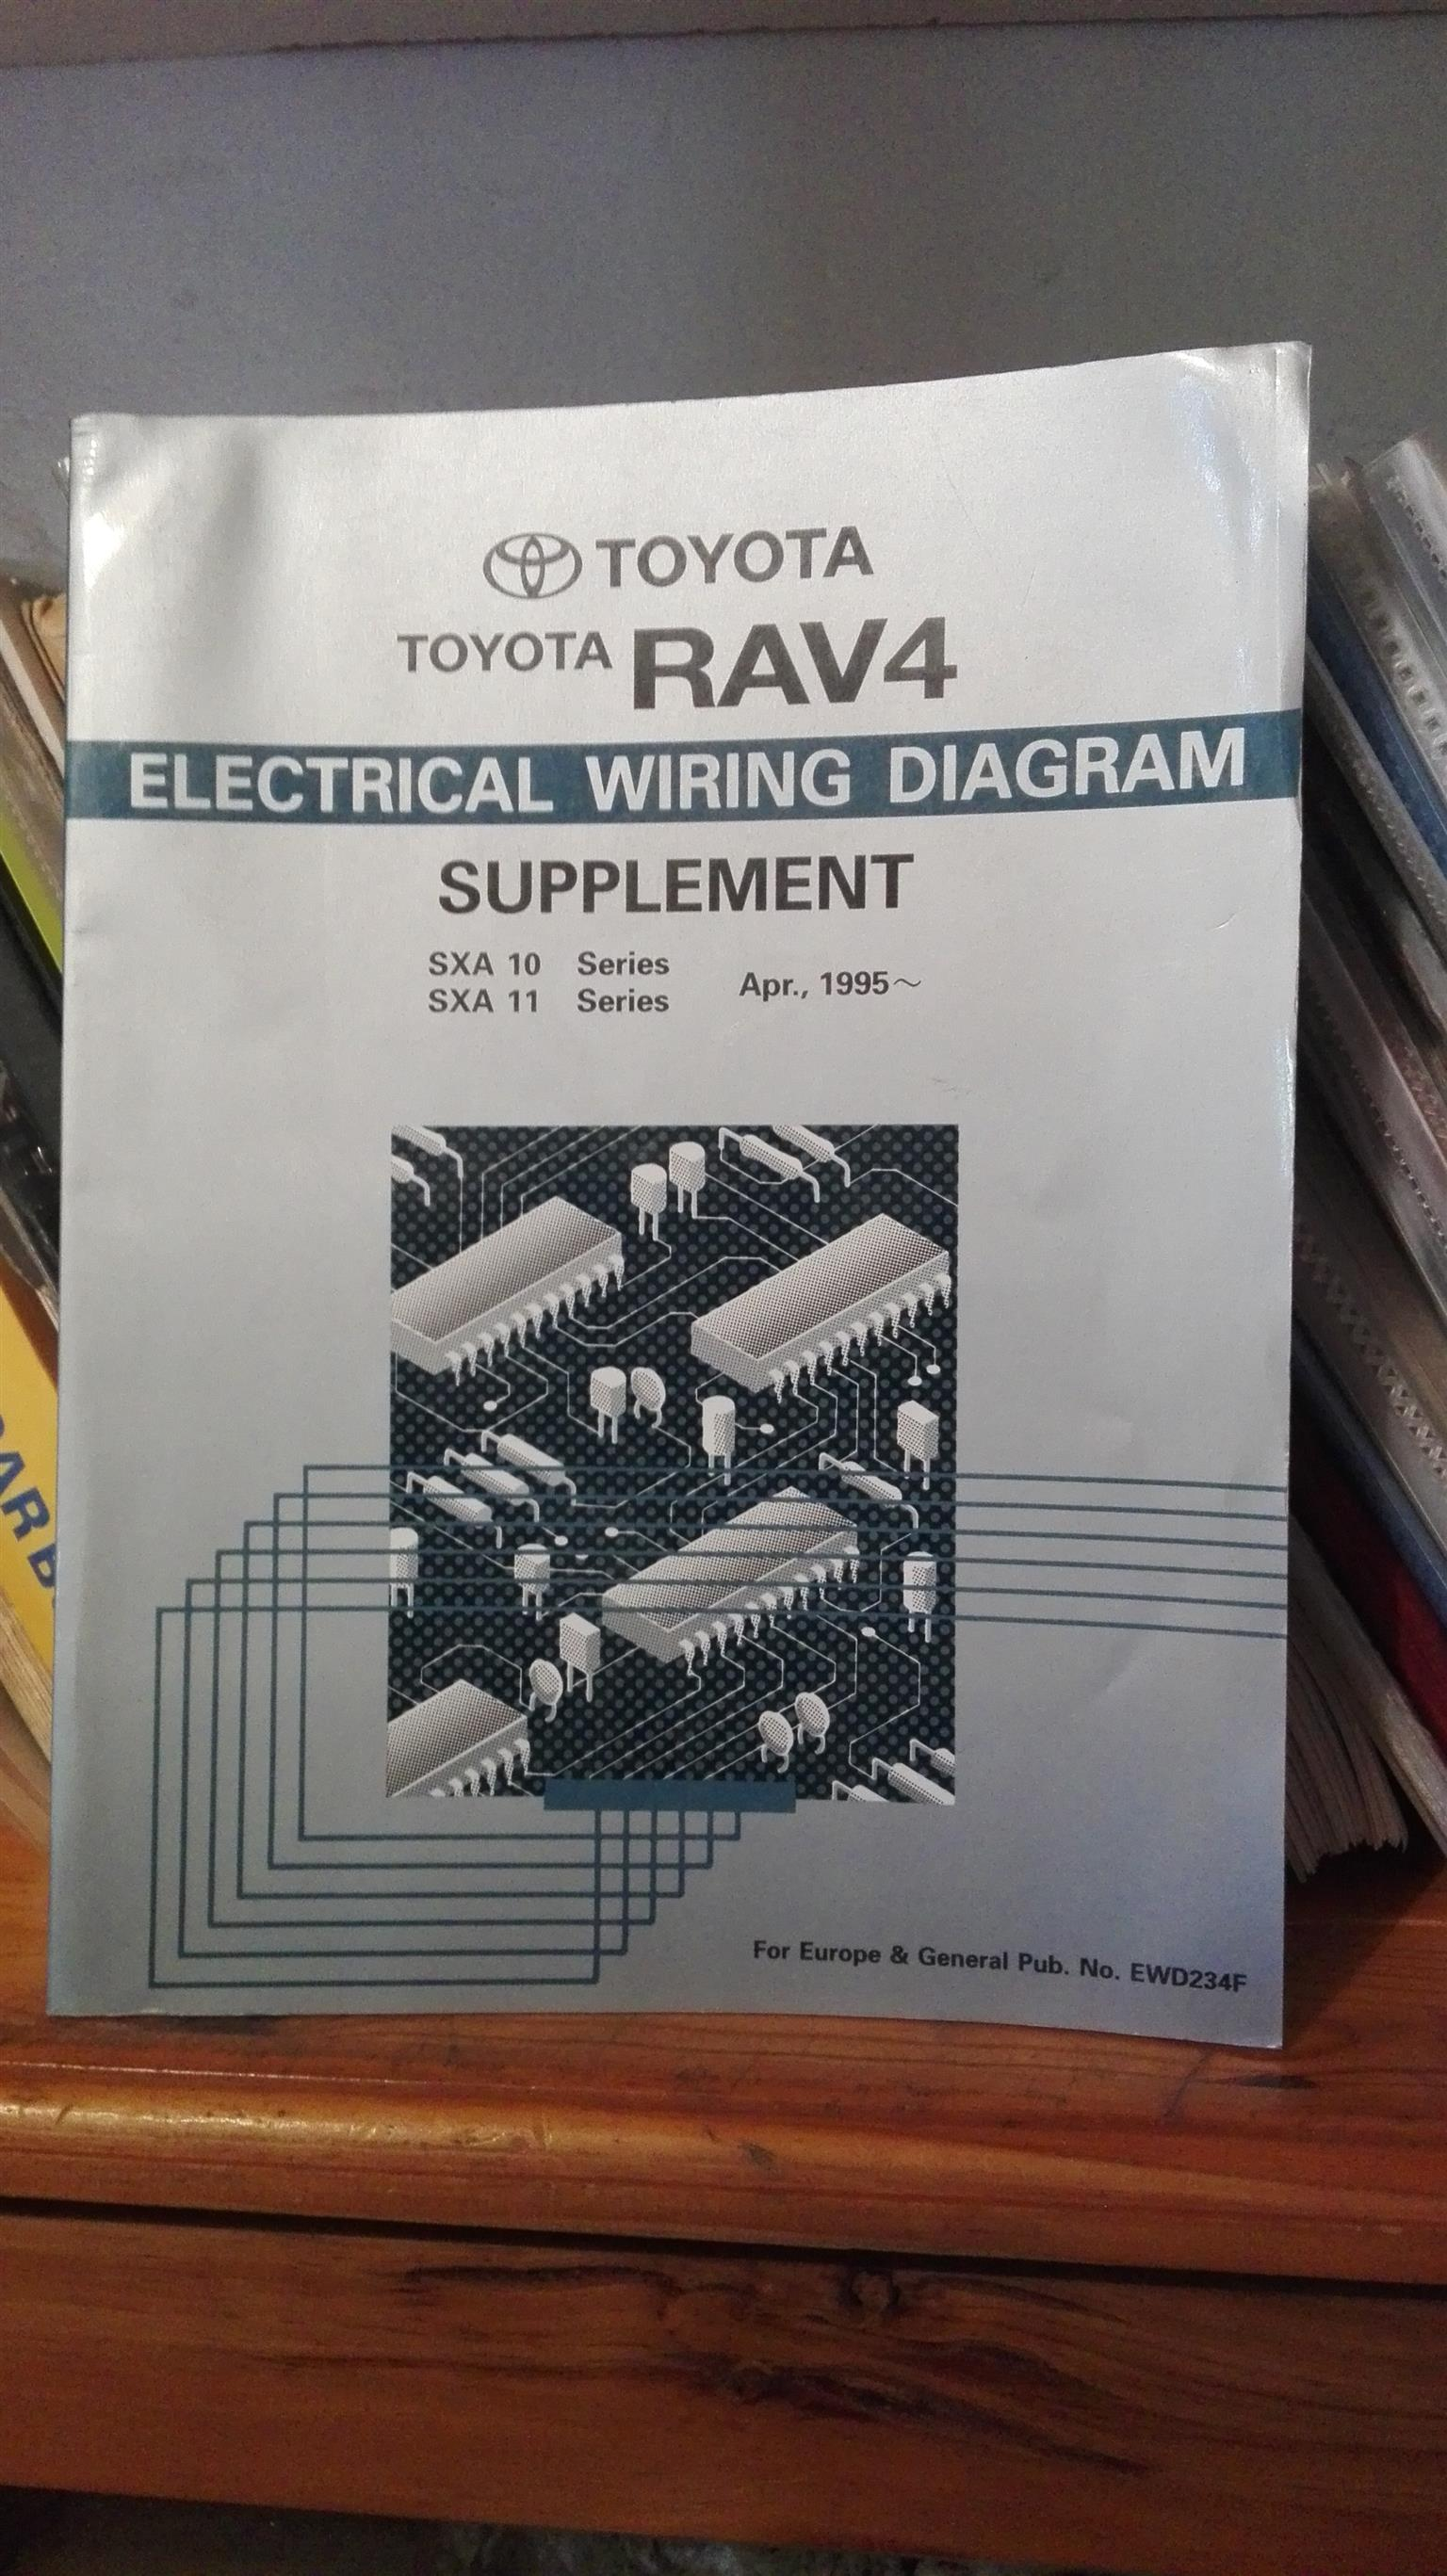 rav 4 1995 onwards electrical wiring diagram manual junk mail rh junkmail co za Toyota RAV4 Parts Diagram 2002 RAV4 Exhaust System Diagram